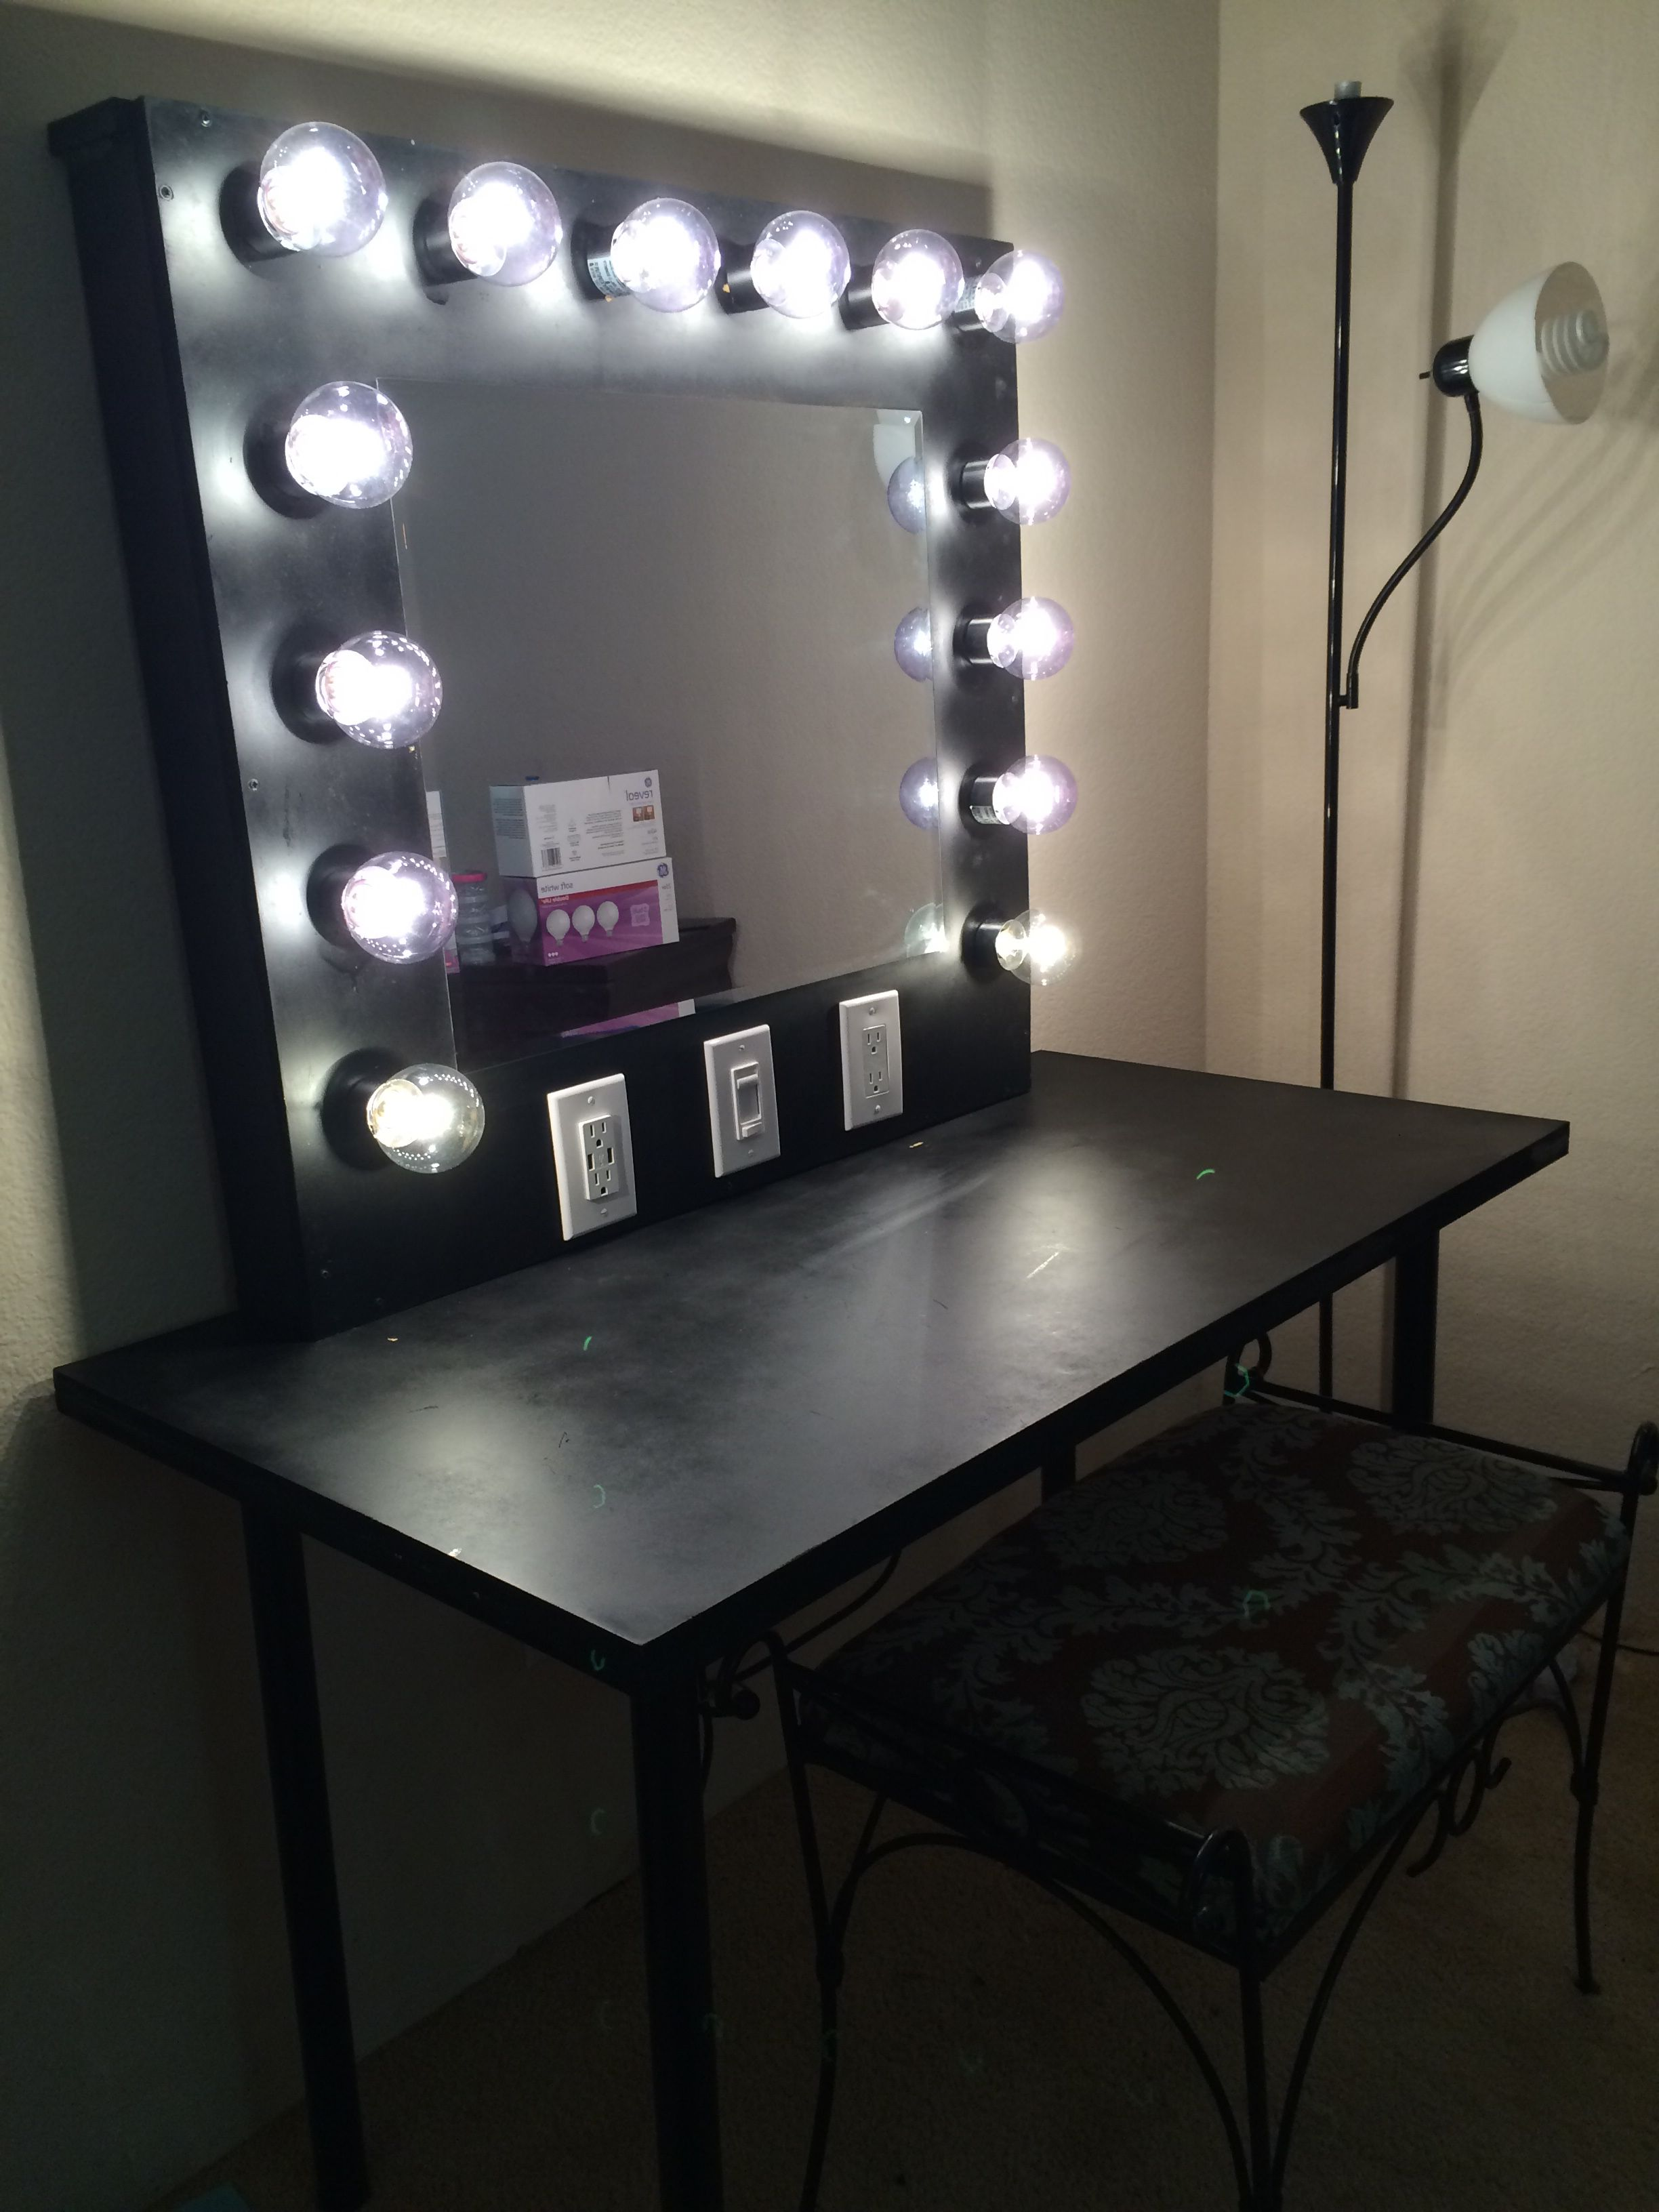 Superbe Homemade Vanity Mirror With Lights And Table Homemade Vanity, Bedroom Vanity  With Lights, Diy